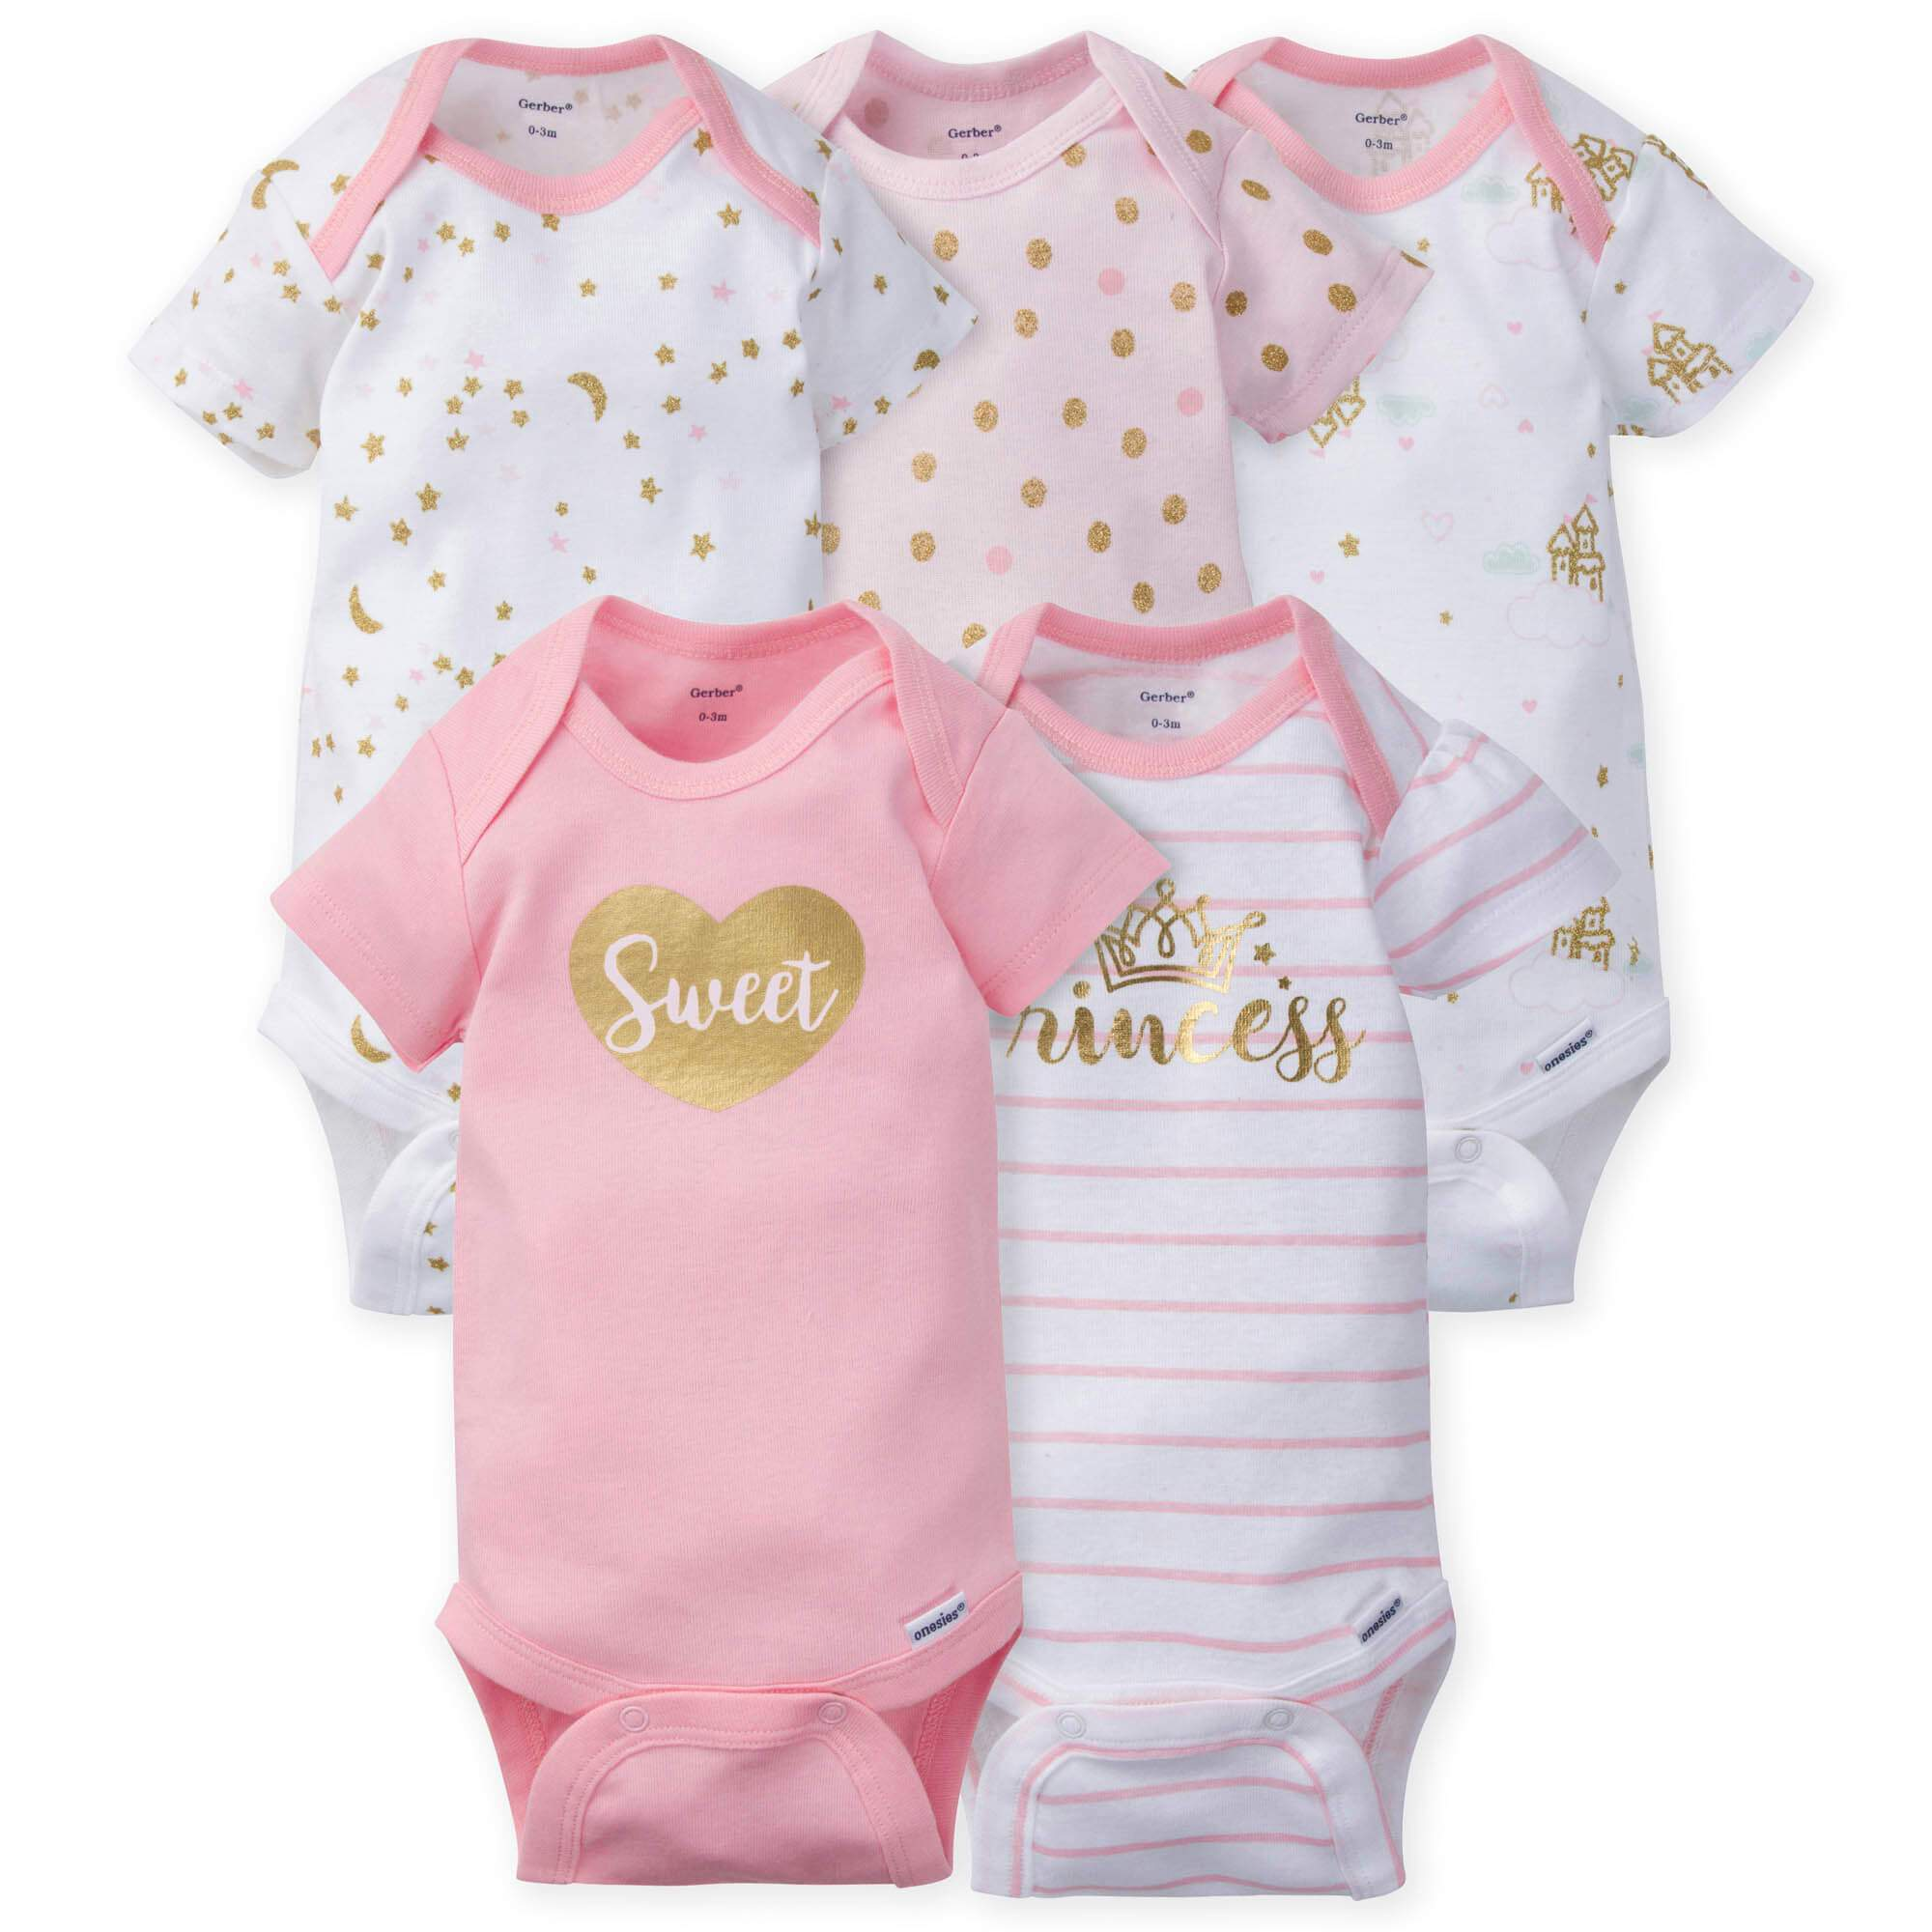 5-Pack Girls Princess Castle Onesies Brand Short Sleeve Bodysuits-Gerber Childrenswear